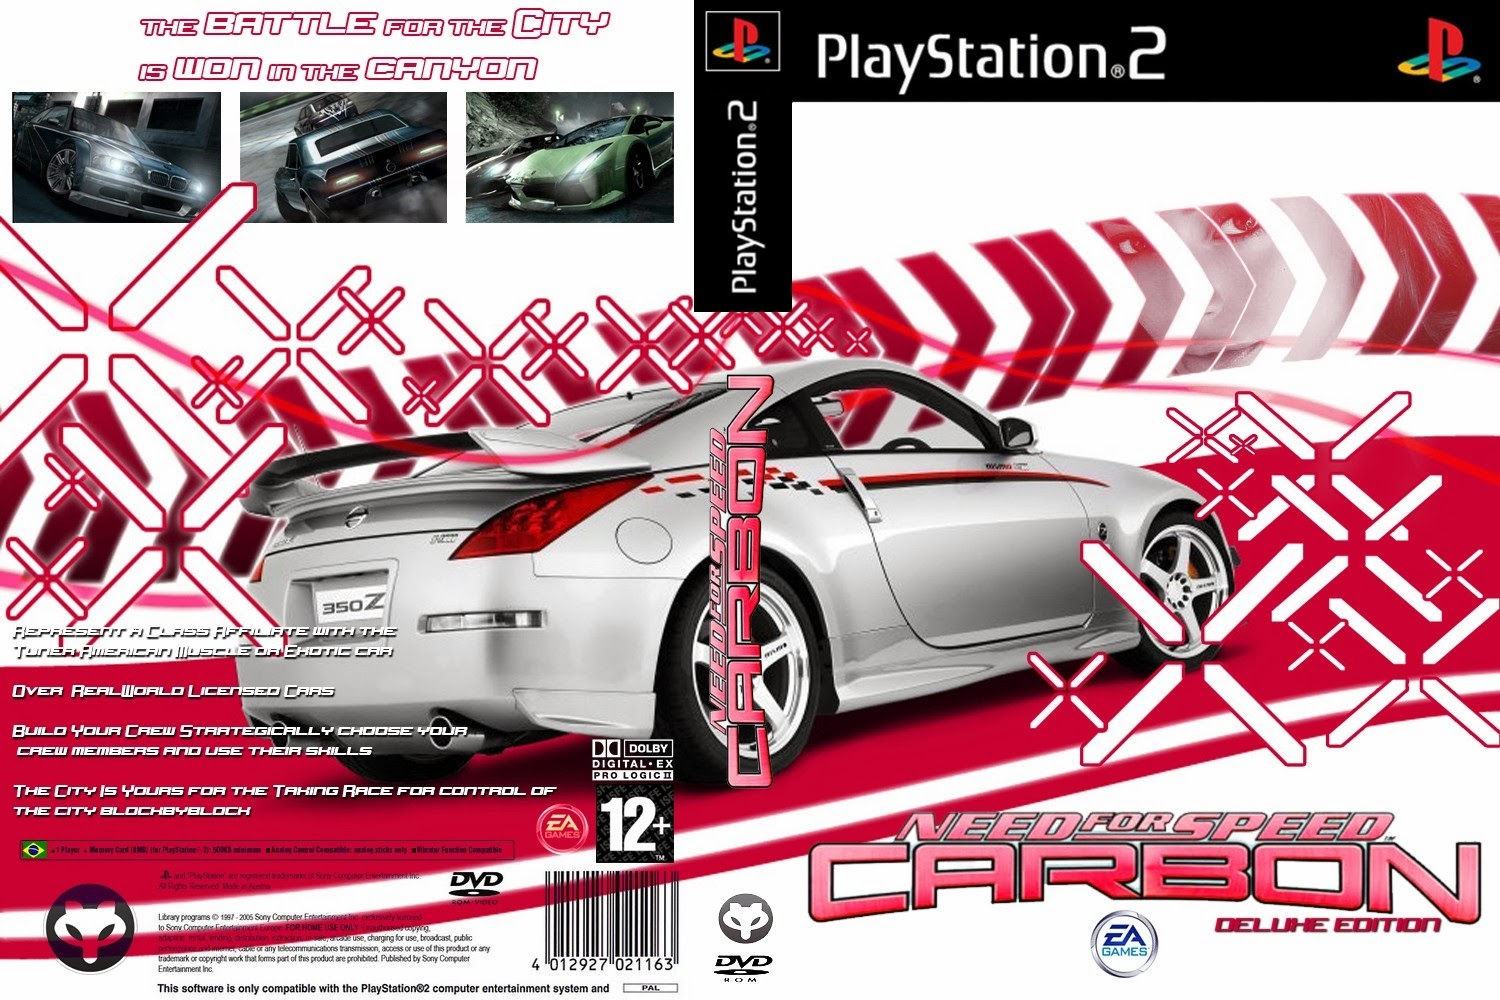 Nfs carbon ps2 | 'Need for Speed: Carbon' PS2 Cheats and